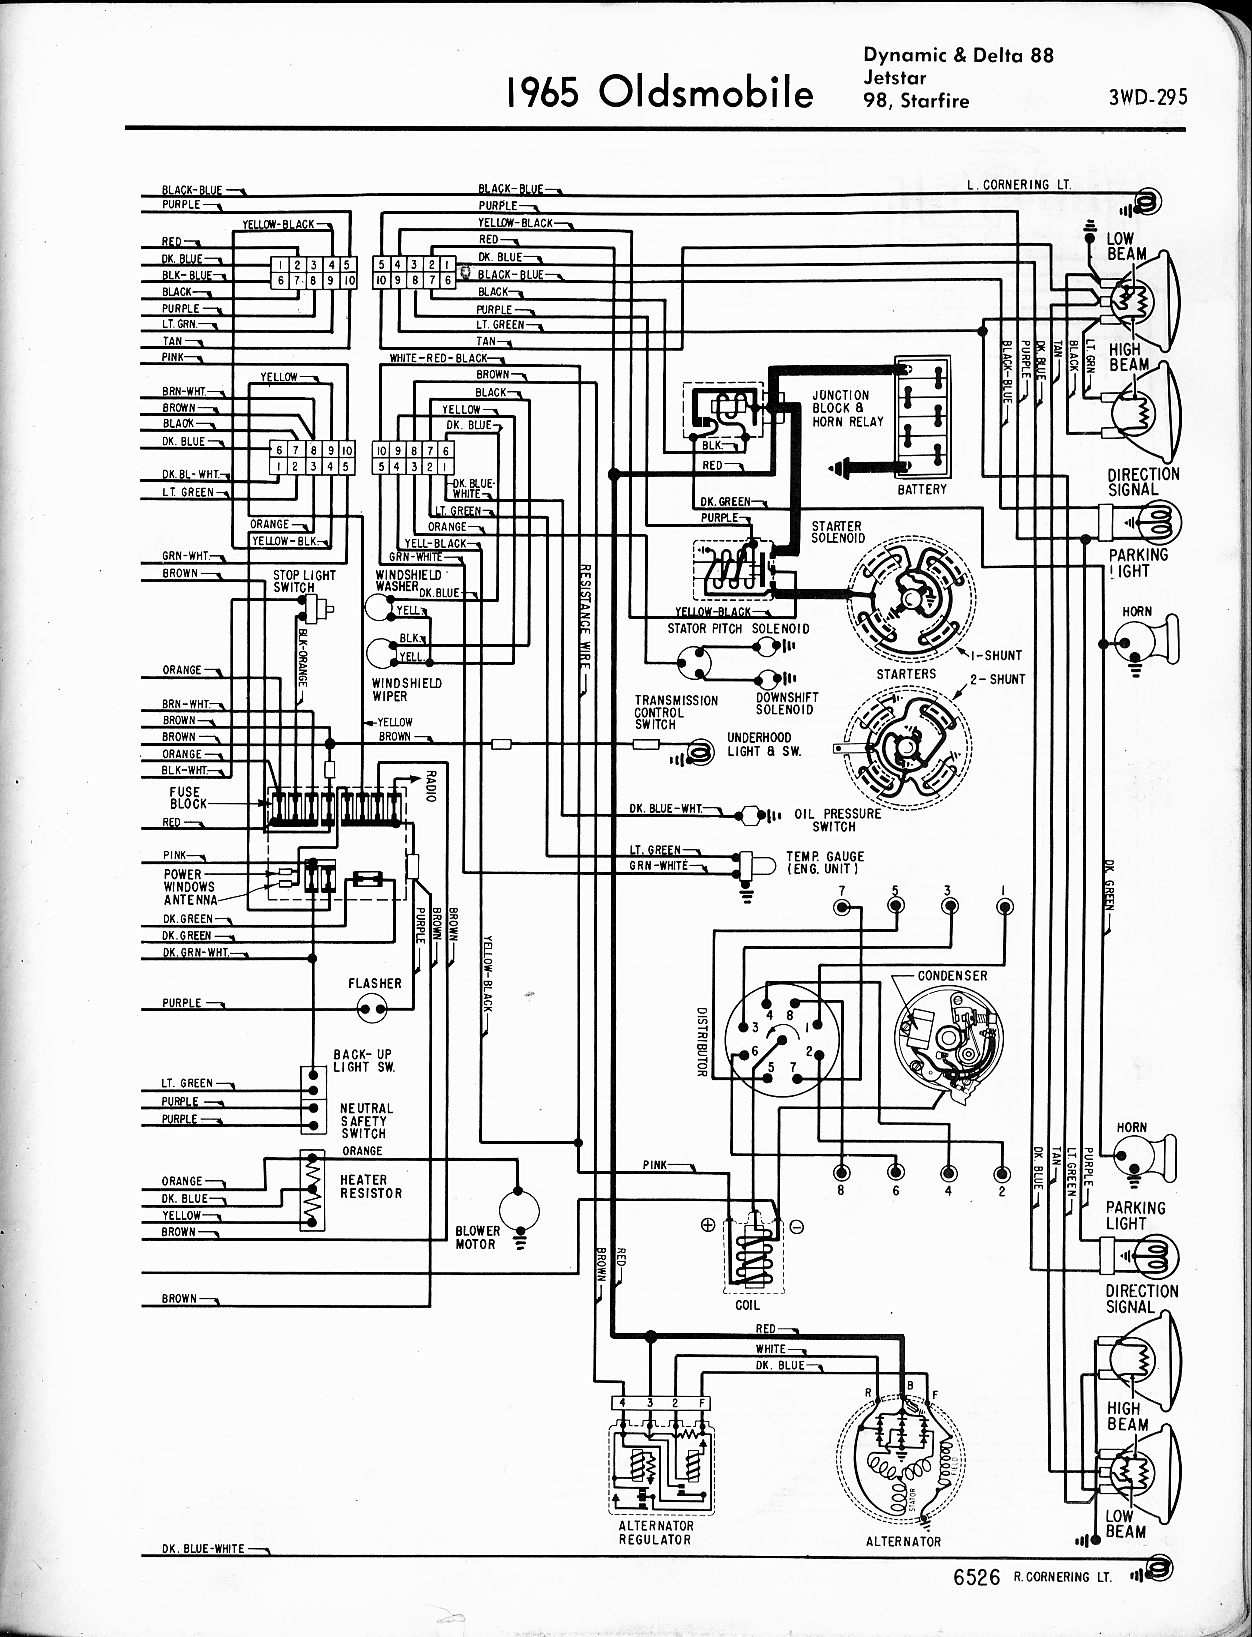 oldsmobile wiring diagrams the old car manual project rh oldcarmanualproject com 1955 oldsmobile wiring diagram 1955 oldsmobile wiring diagram